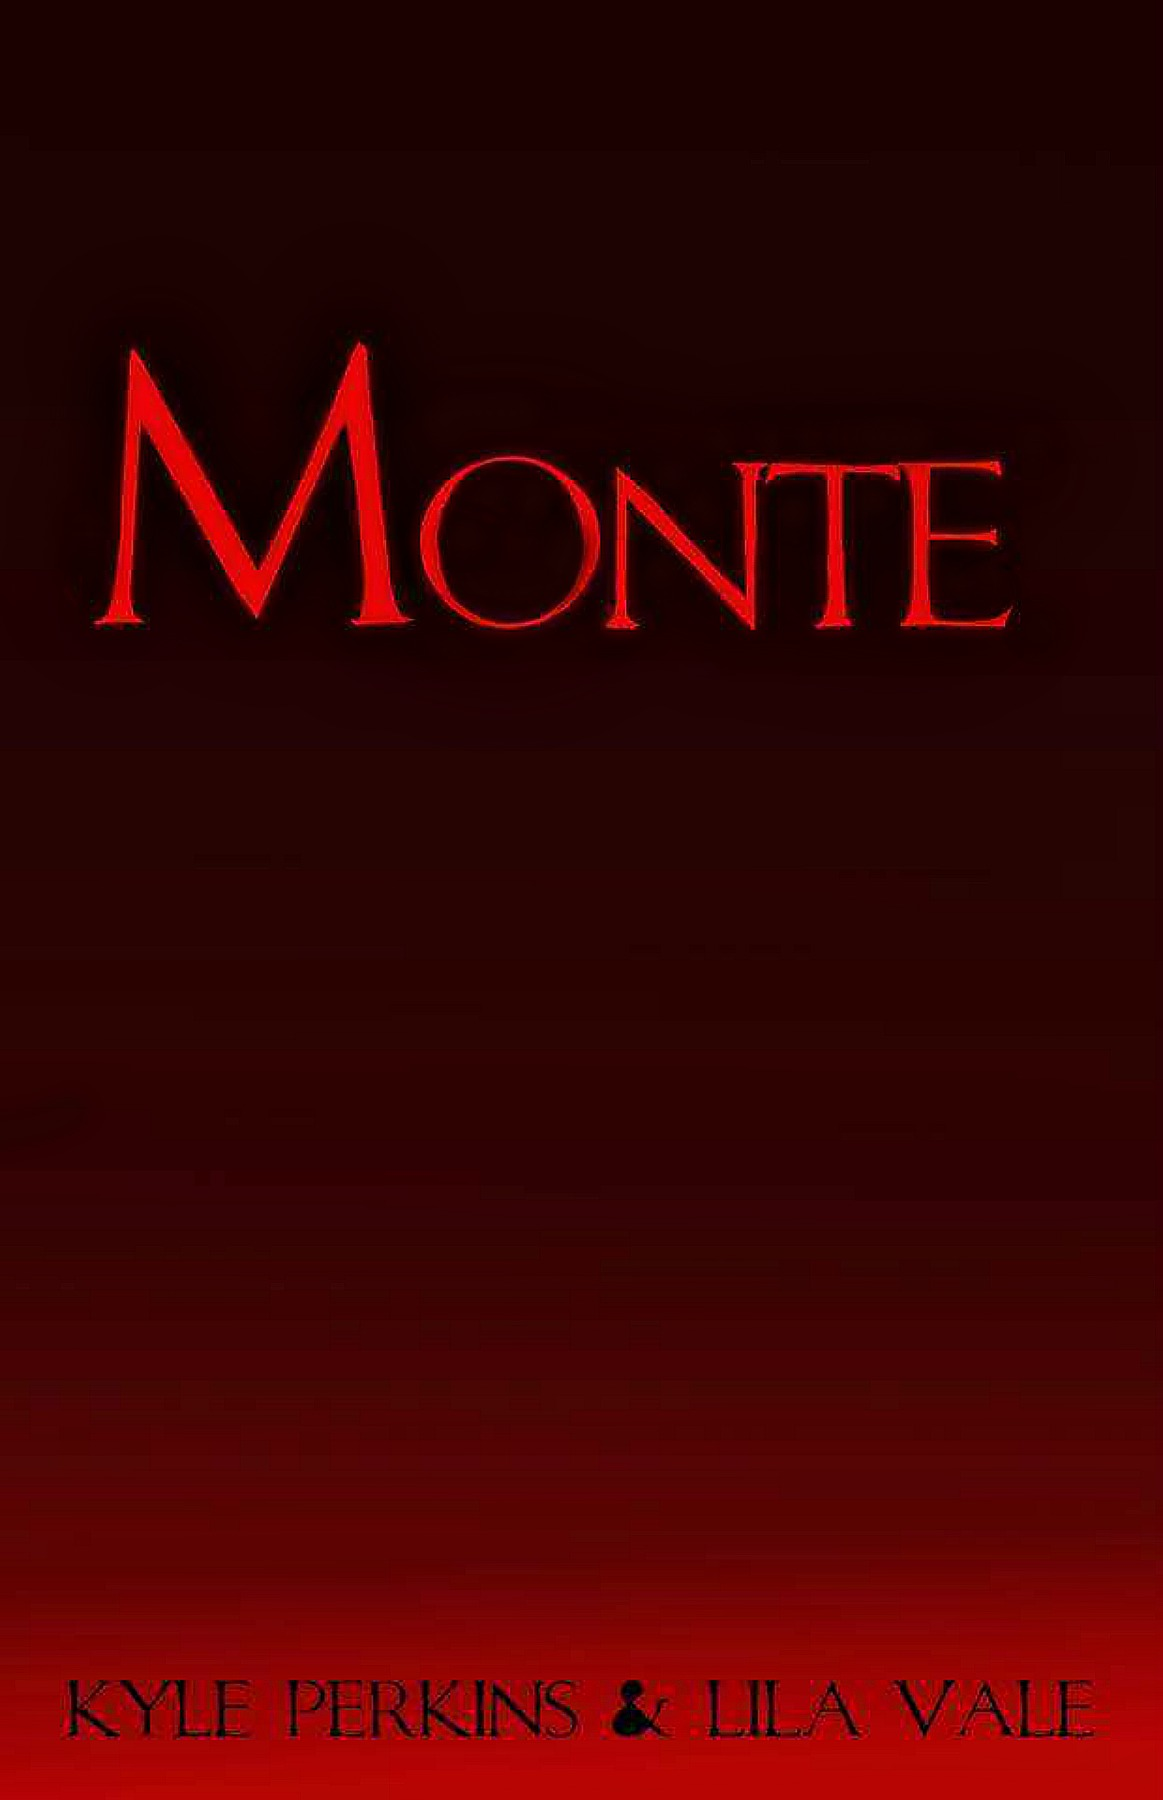 Monte is Live